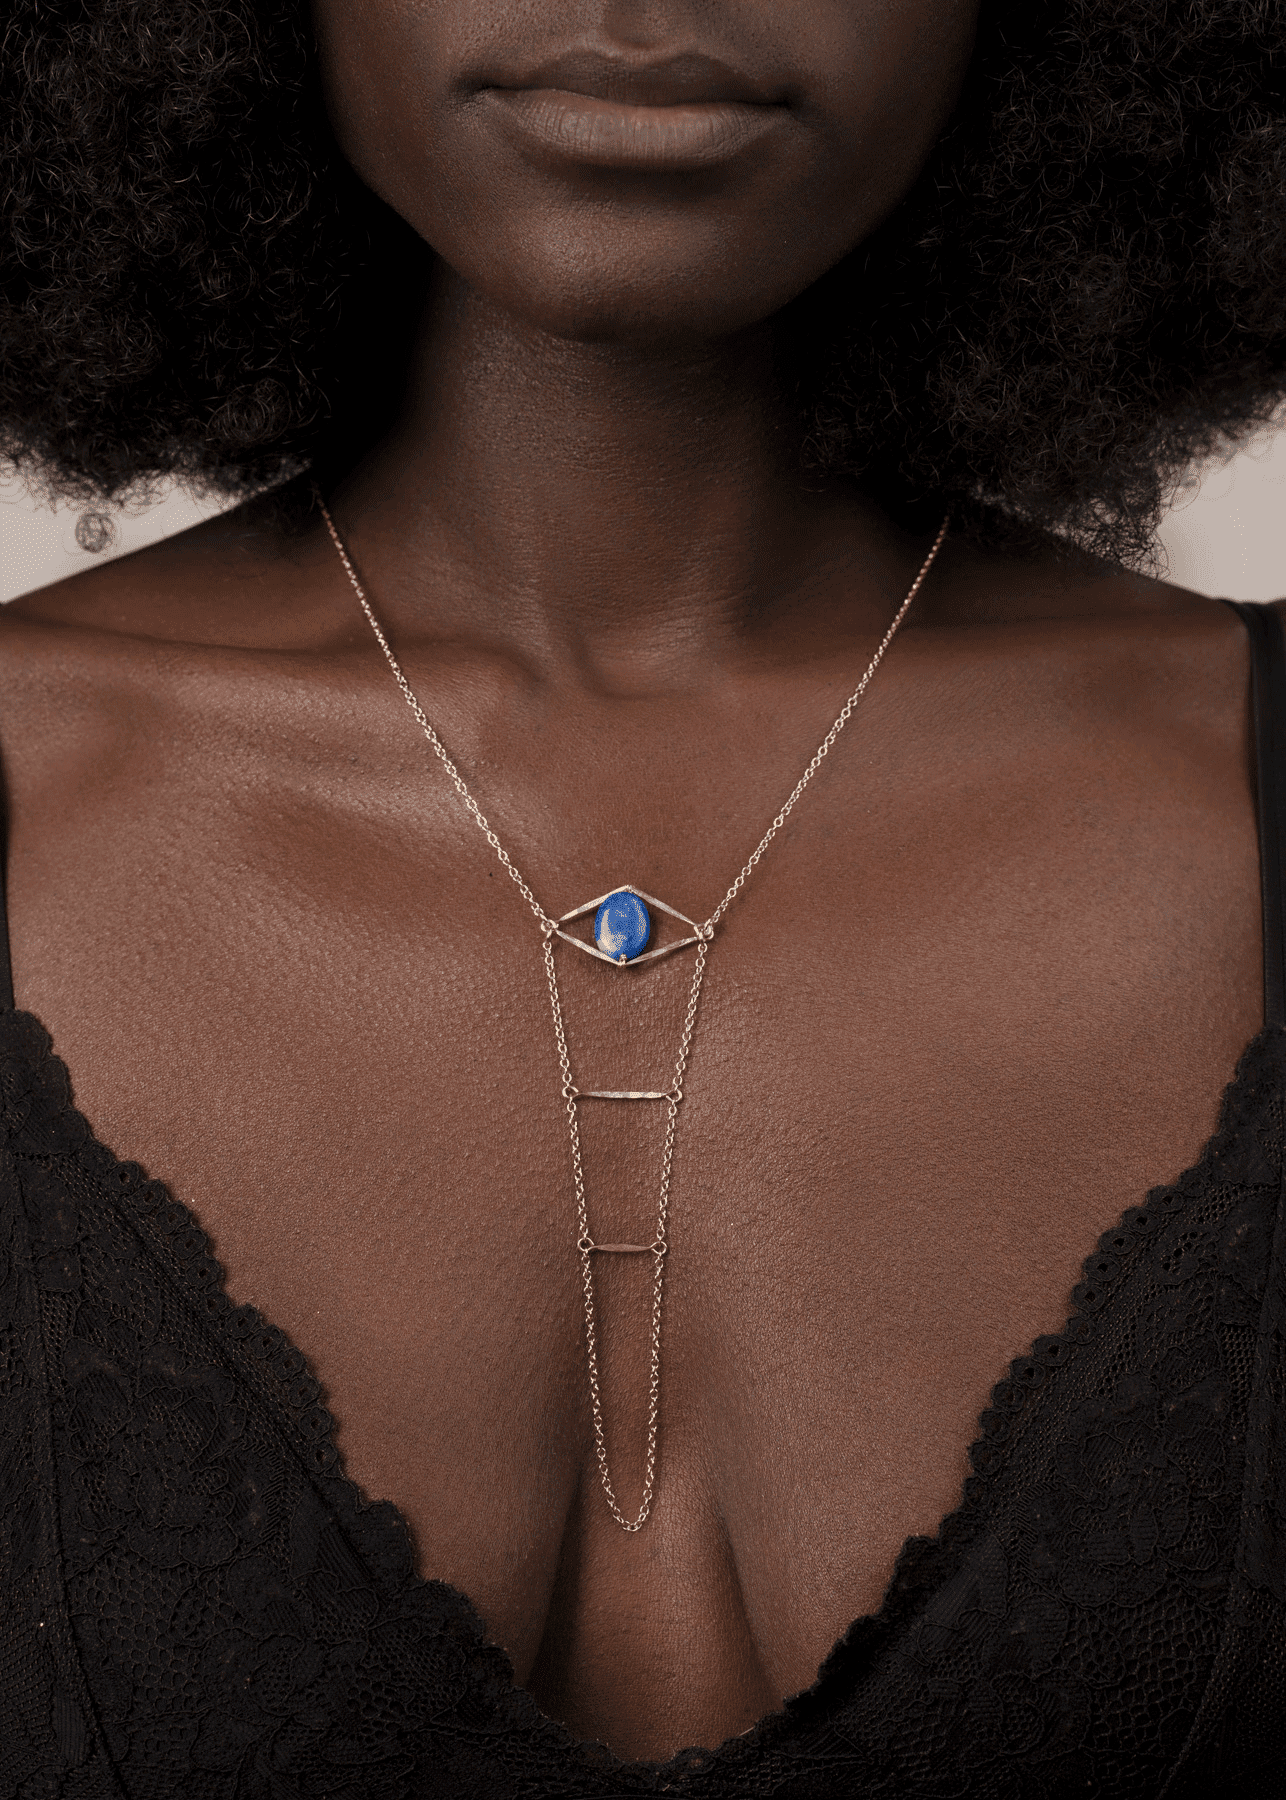 Gemstone Cupid's Eye Handchain - Goldish